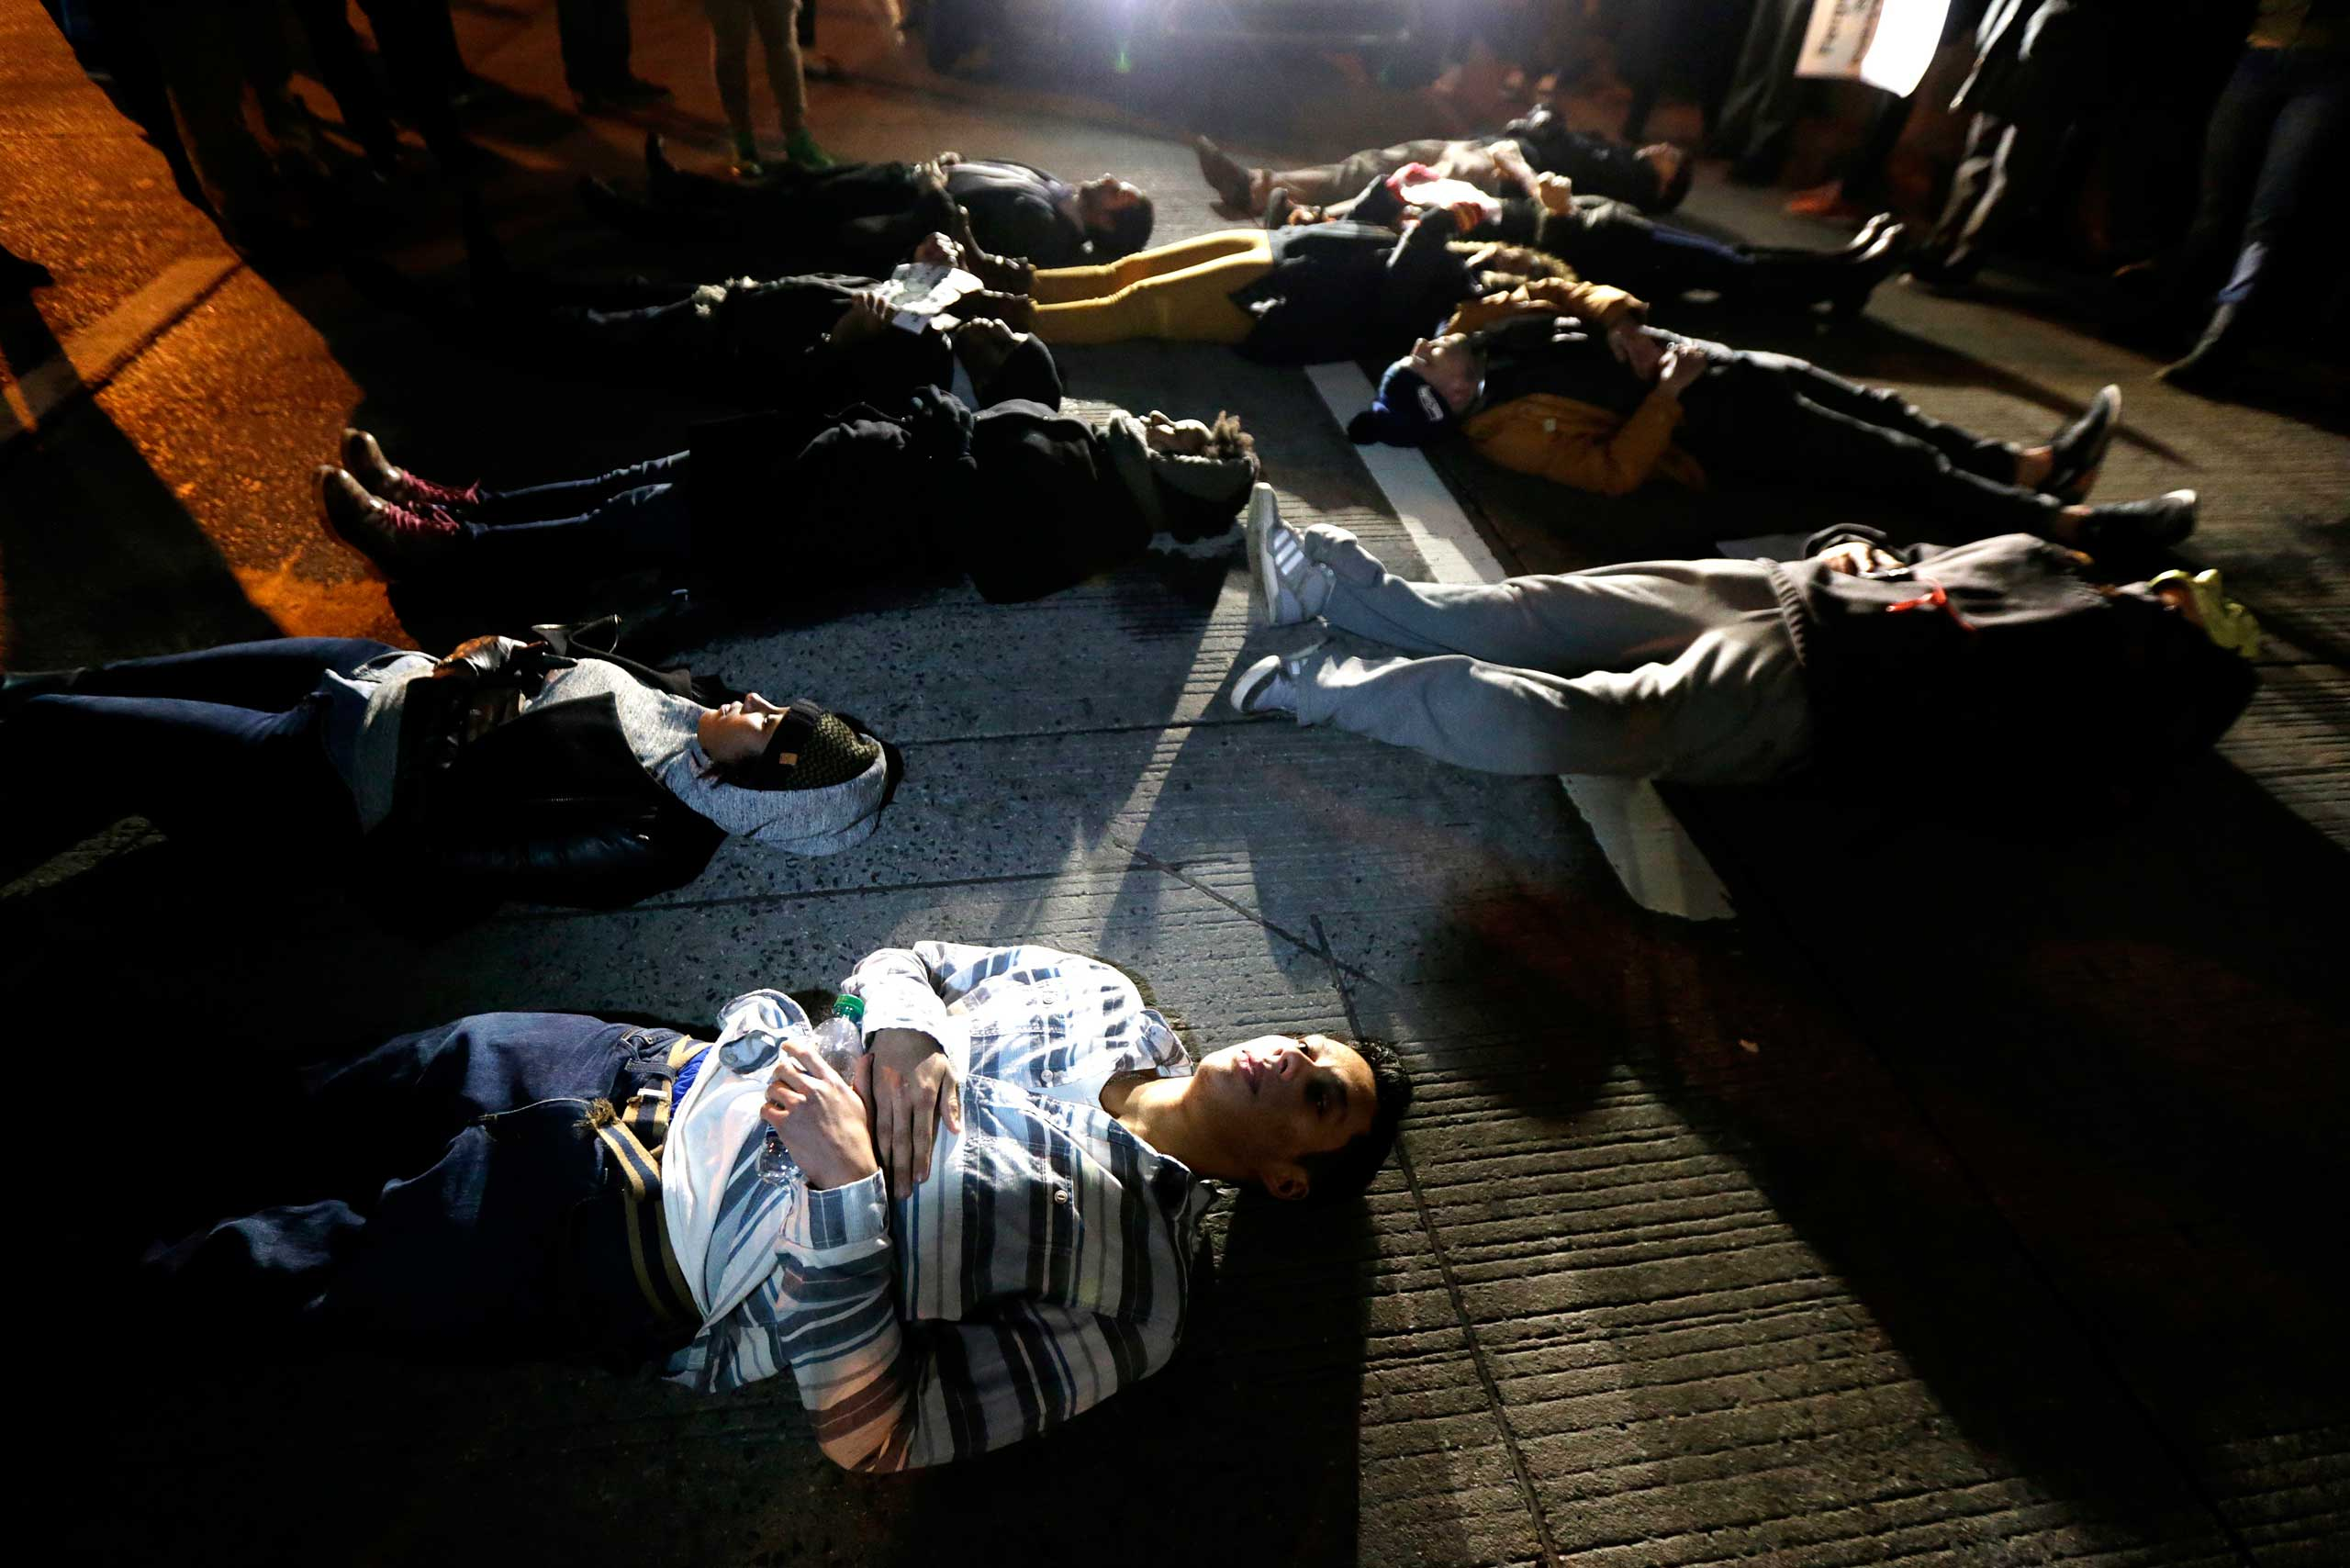 Dec. 3, 2014. People lie on the middle of the West Side Highway in New York during a protest after it was announced that the New York City police officer involved in the death of Eric Garner was not indicted. A grand jury cleared the officer in the videotaped chokehold death of Garner, an unarmed black man, who had been stopped on suspicion of selling loose, untaxed cigarettes.